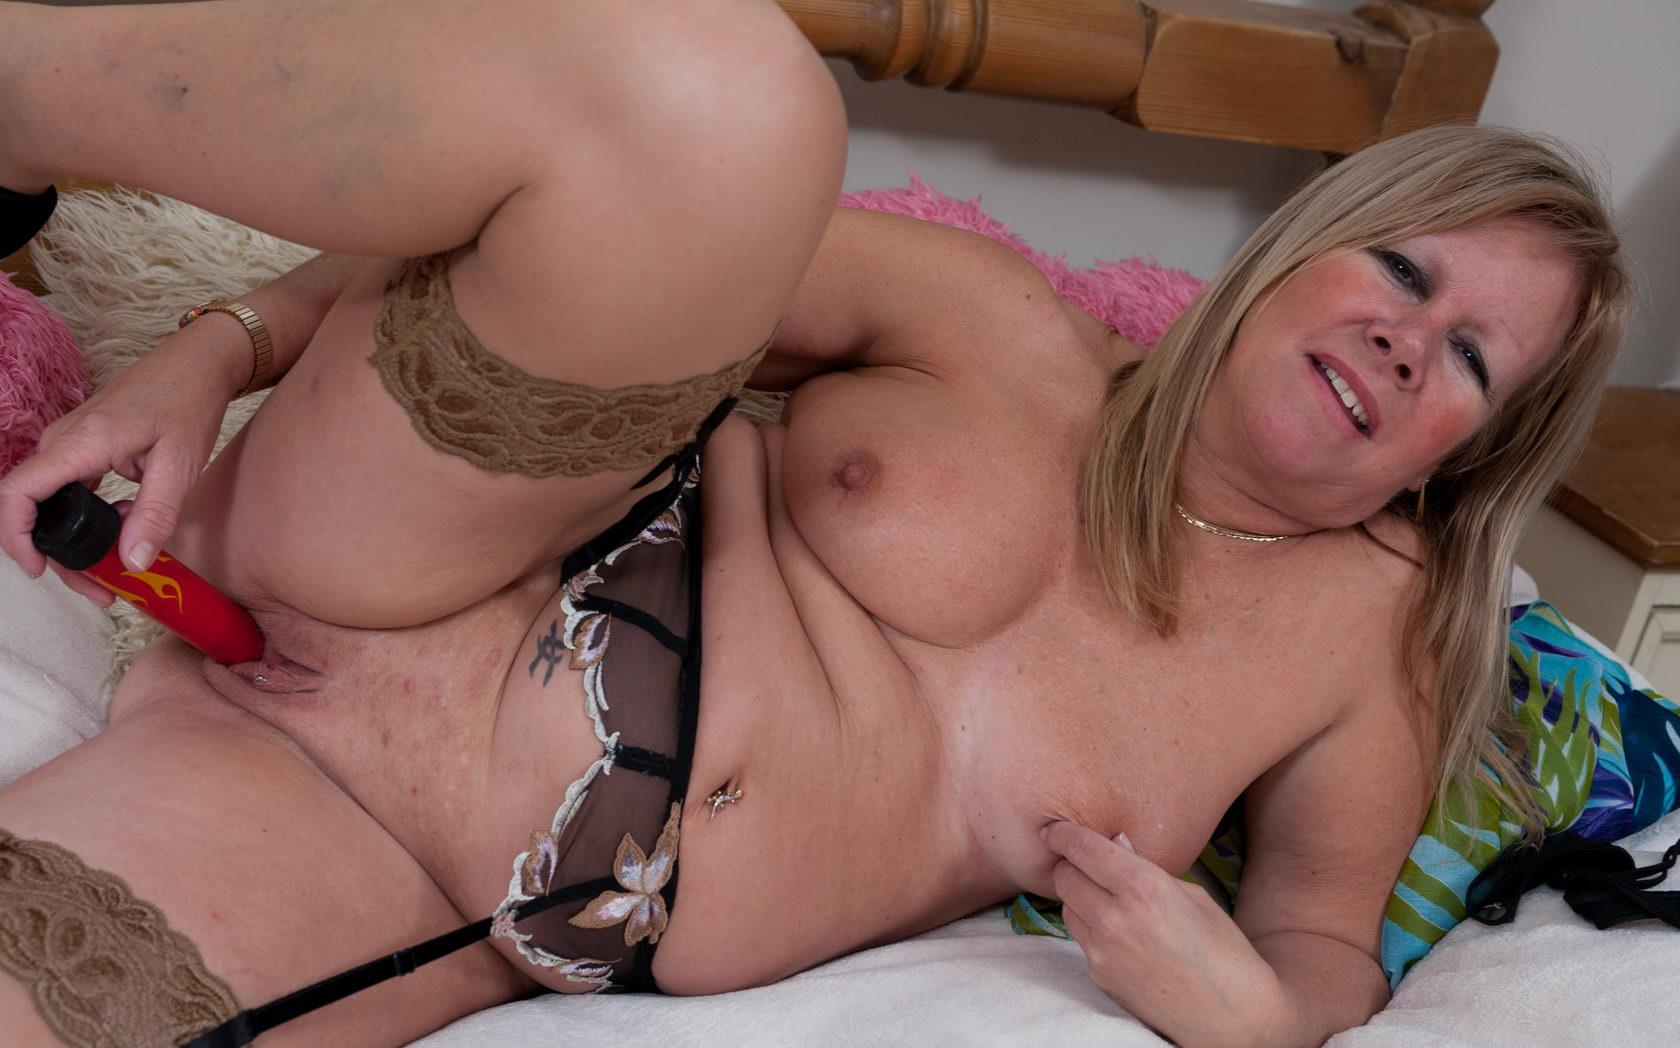 Andrea ,a  granny mistress who is mostly interested to give romantic tugjob